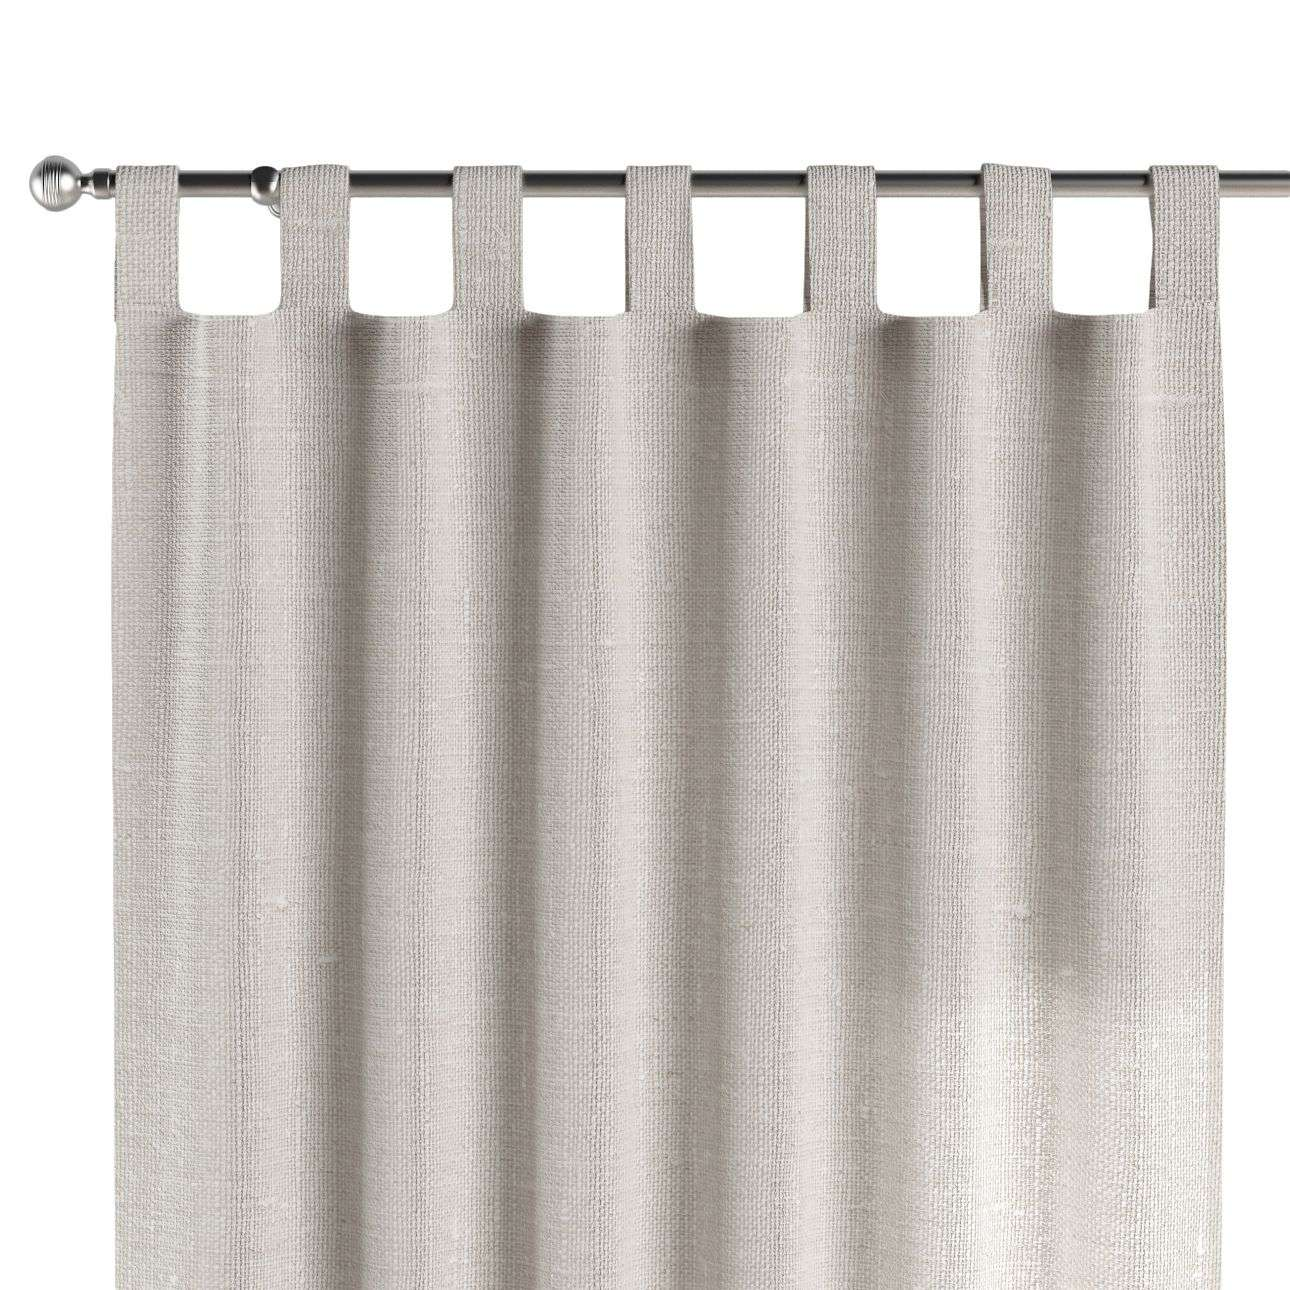 Tab top curtains 130 x 260 cm (51 x 102 inch) in collection Linen, fabric: 392-04